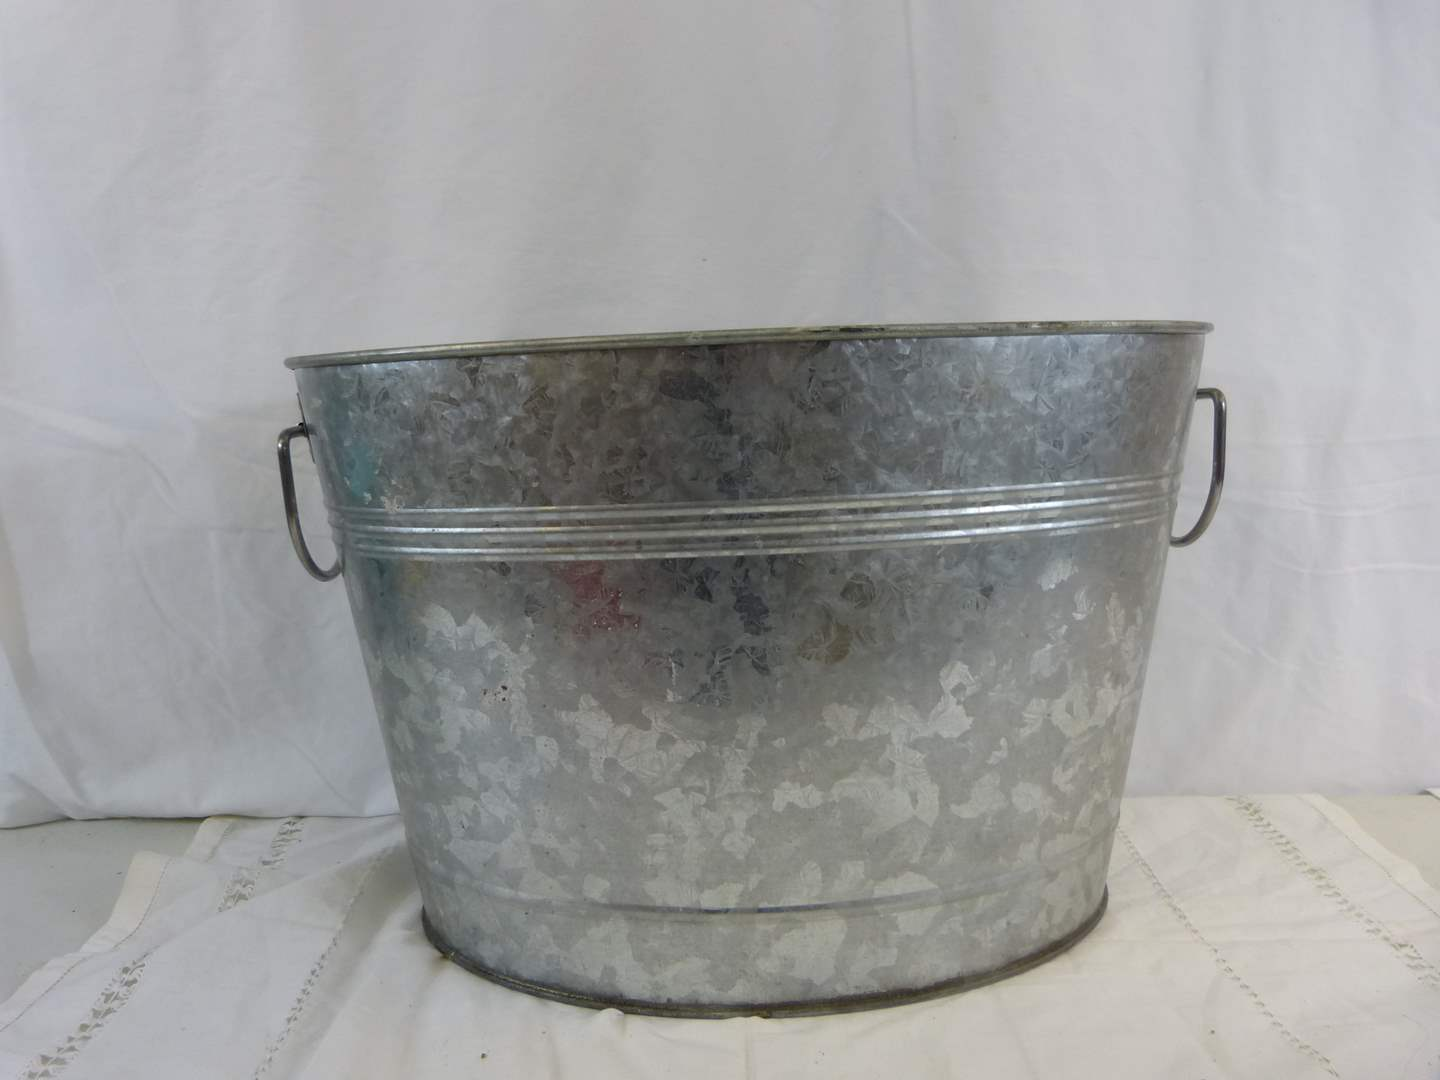 Lot # 37 Double handle galvanized metal beverage pail (main image)